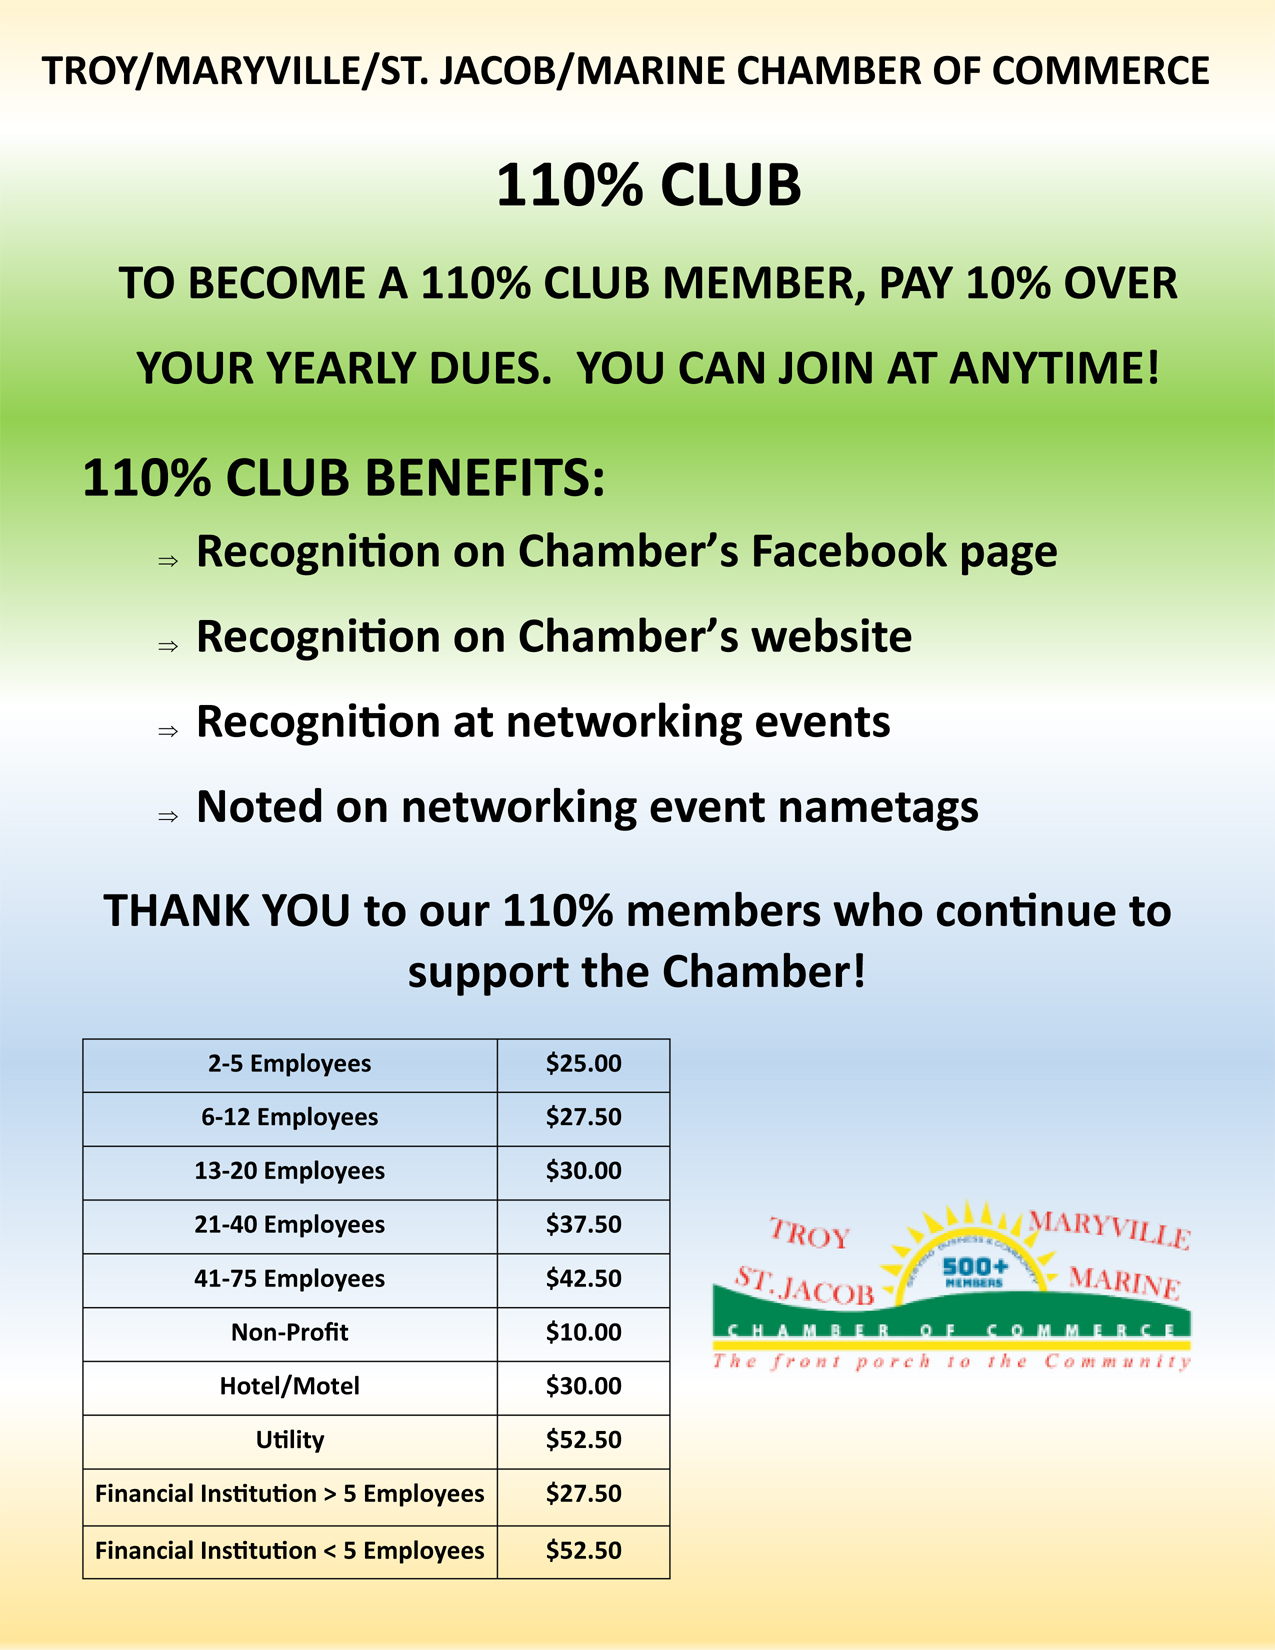 Troy Maryville St. Jacob Marine Chamber of Commerce 110% Club